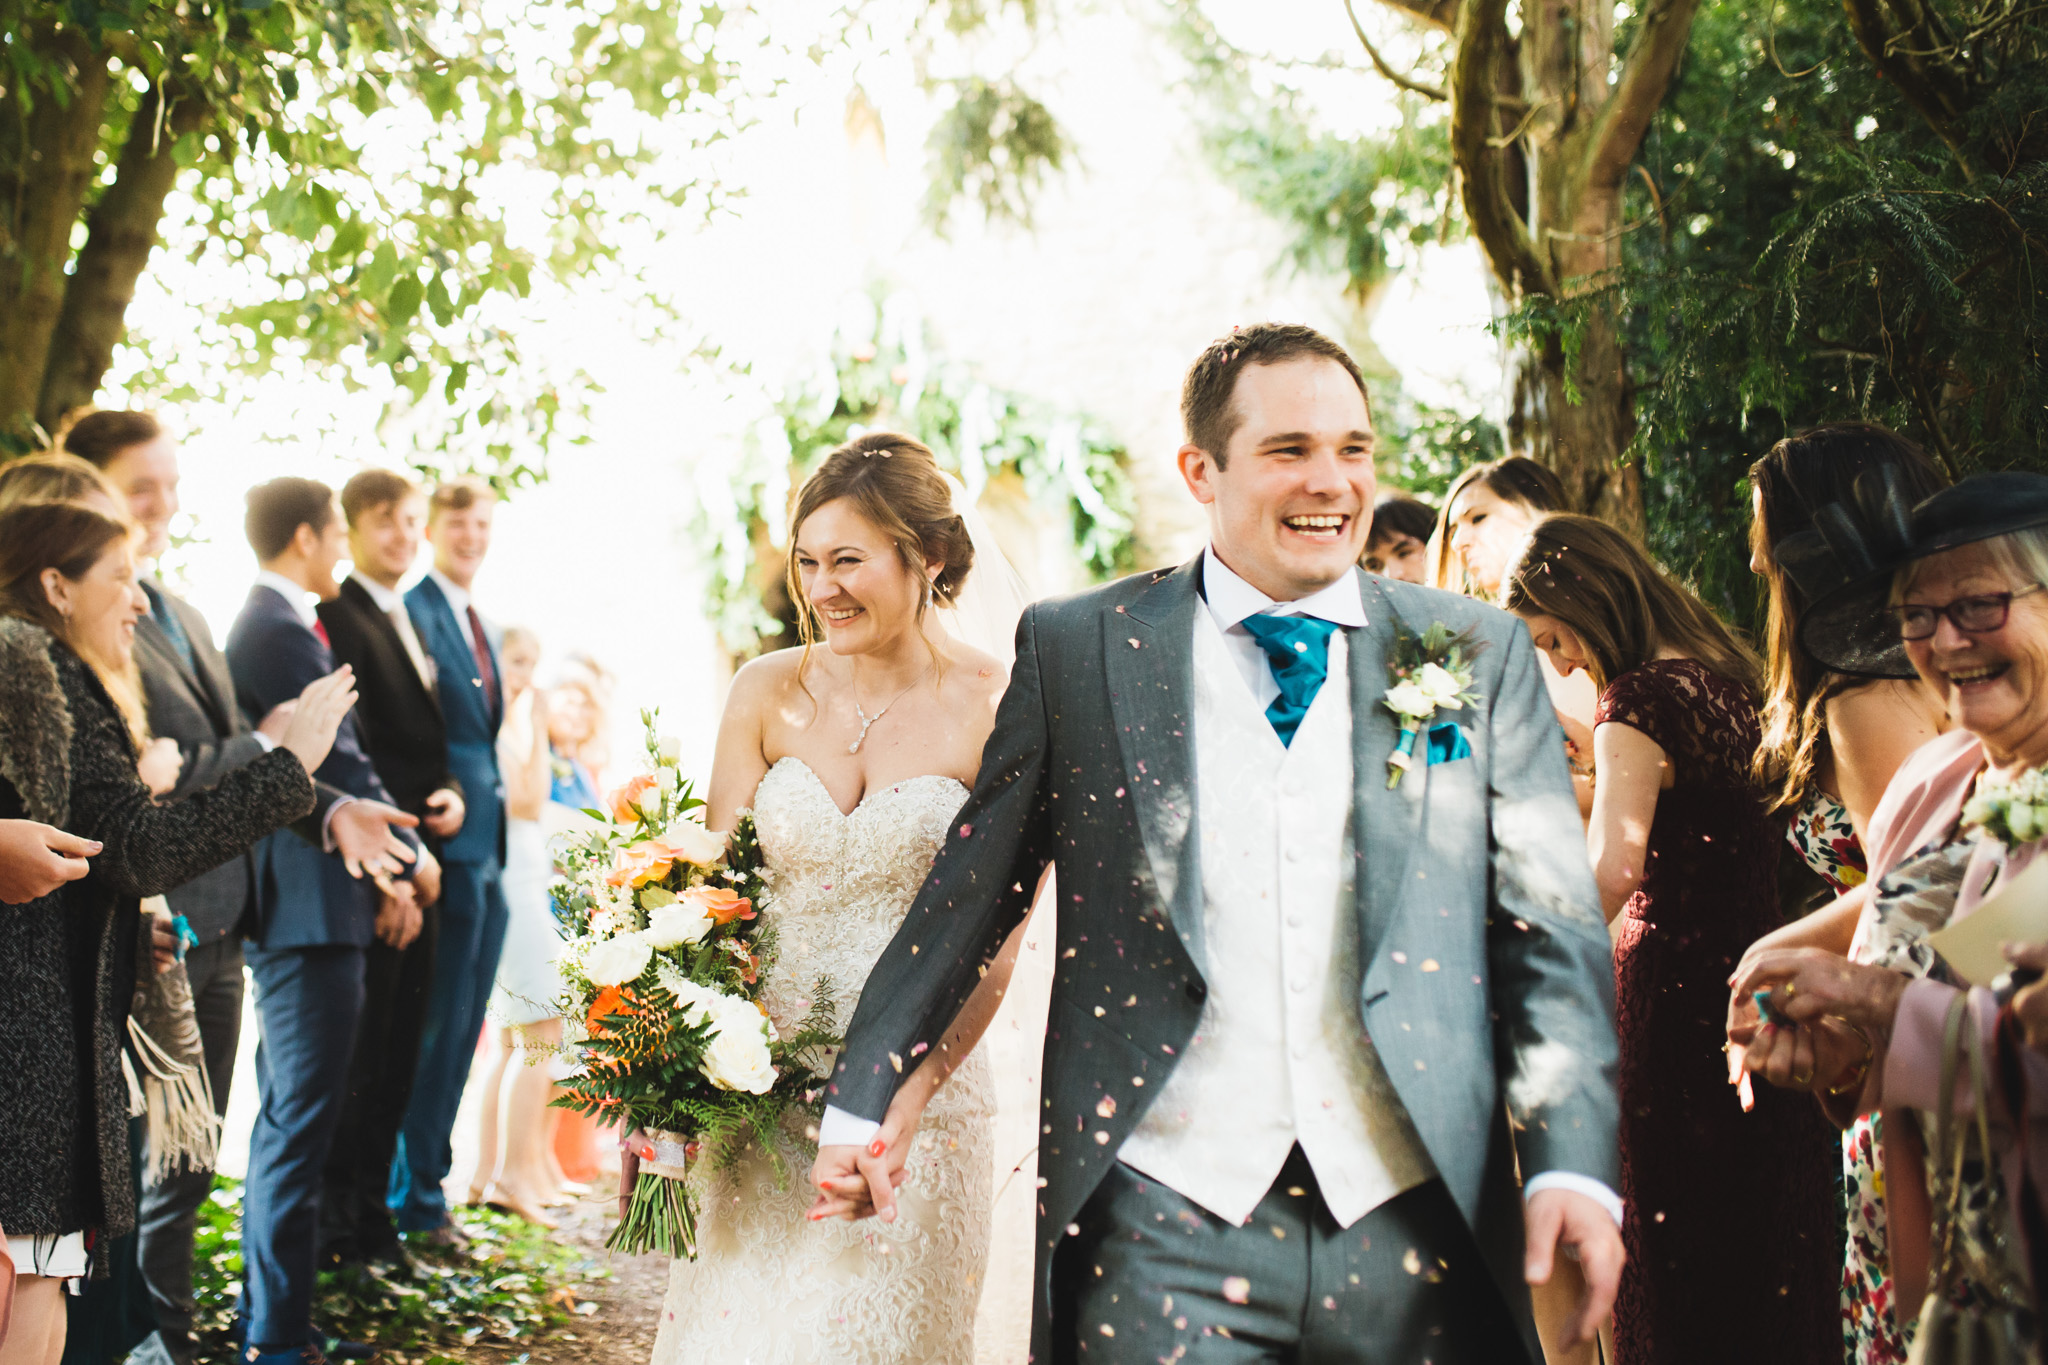 cat-lane-weddings__chicheley-hall-wedding-photography__clw__1356__38A1255.jpg